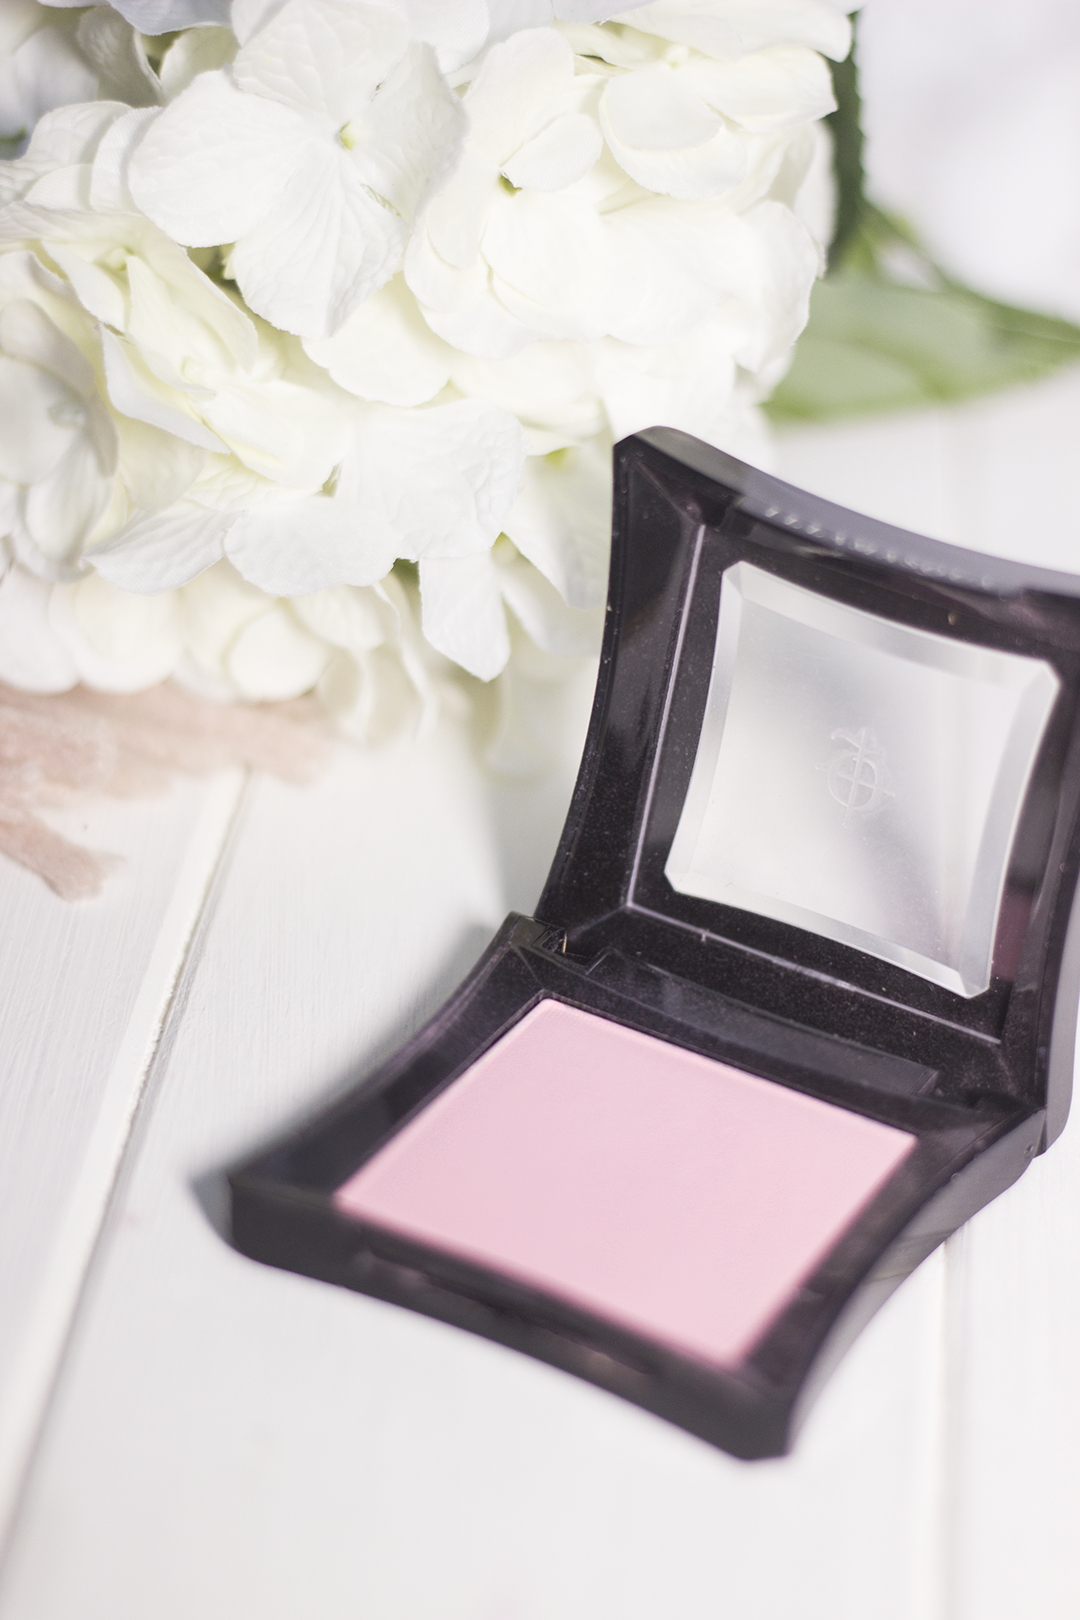 High End Beauty items Illamasqua Blusher